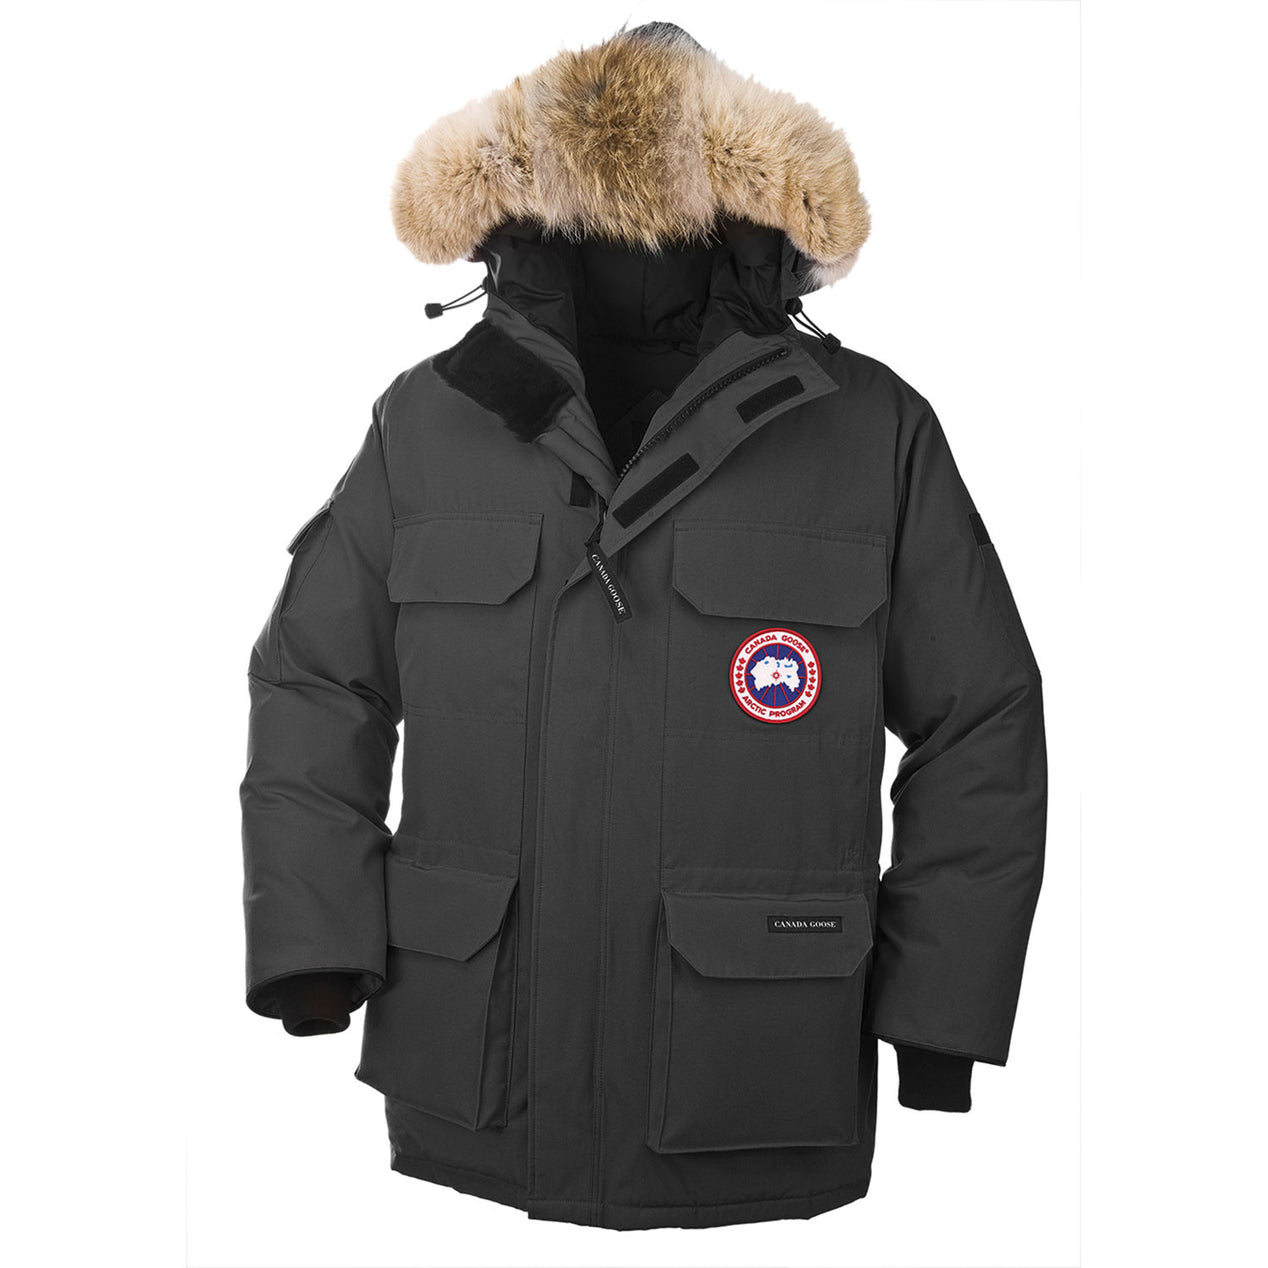 9493e69bf0f8 Canada Goose Men s Expedition Parka